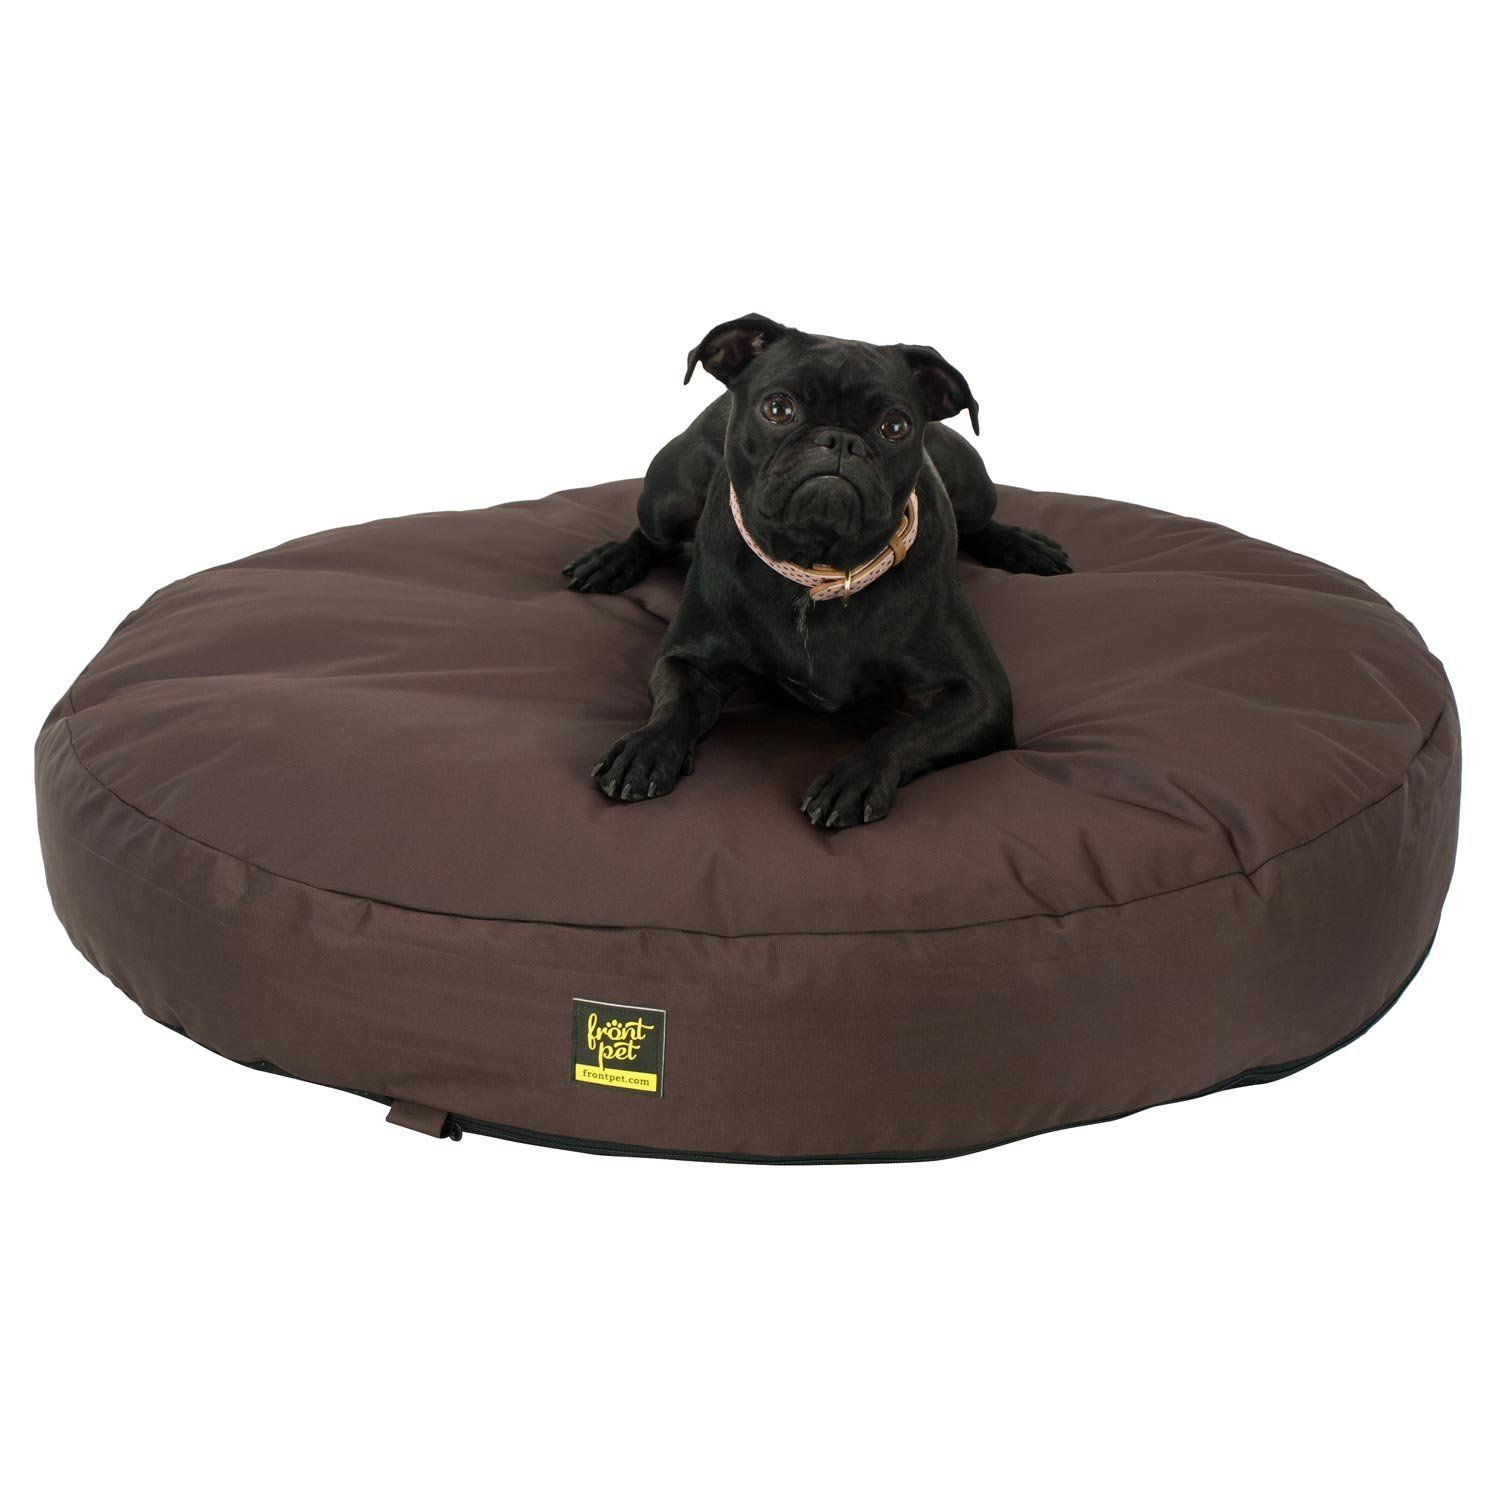 Chew Proof Dog Bed Indestructible Dog Bed Chewproof Dog Beds Chew Proof Dog Beds Chew Resistant Pet Bed Chew Proof Dog Bed Dog Bed Memory Foam Dog Bed